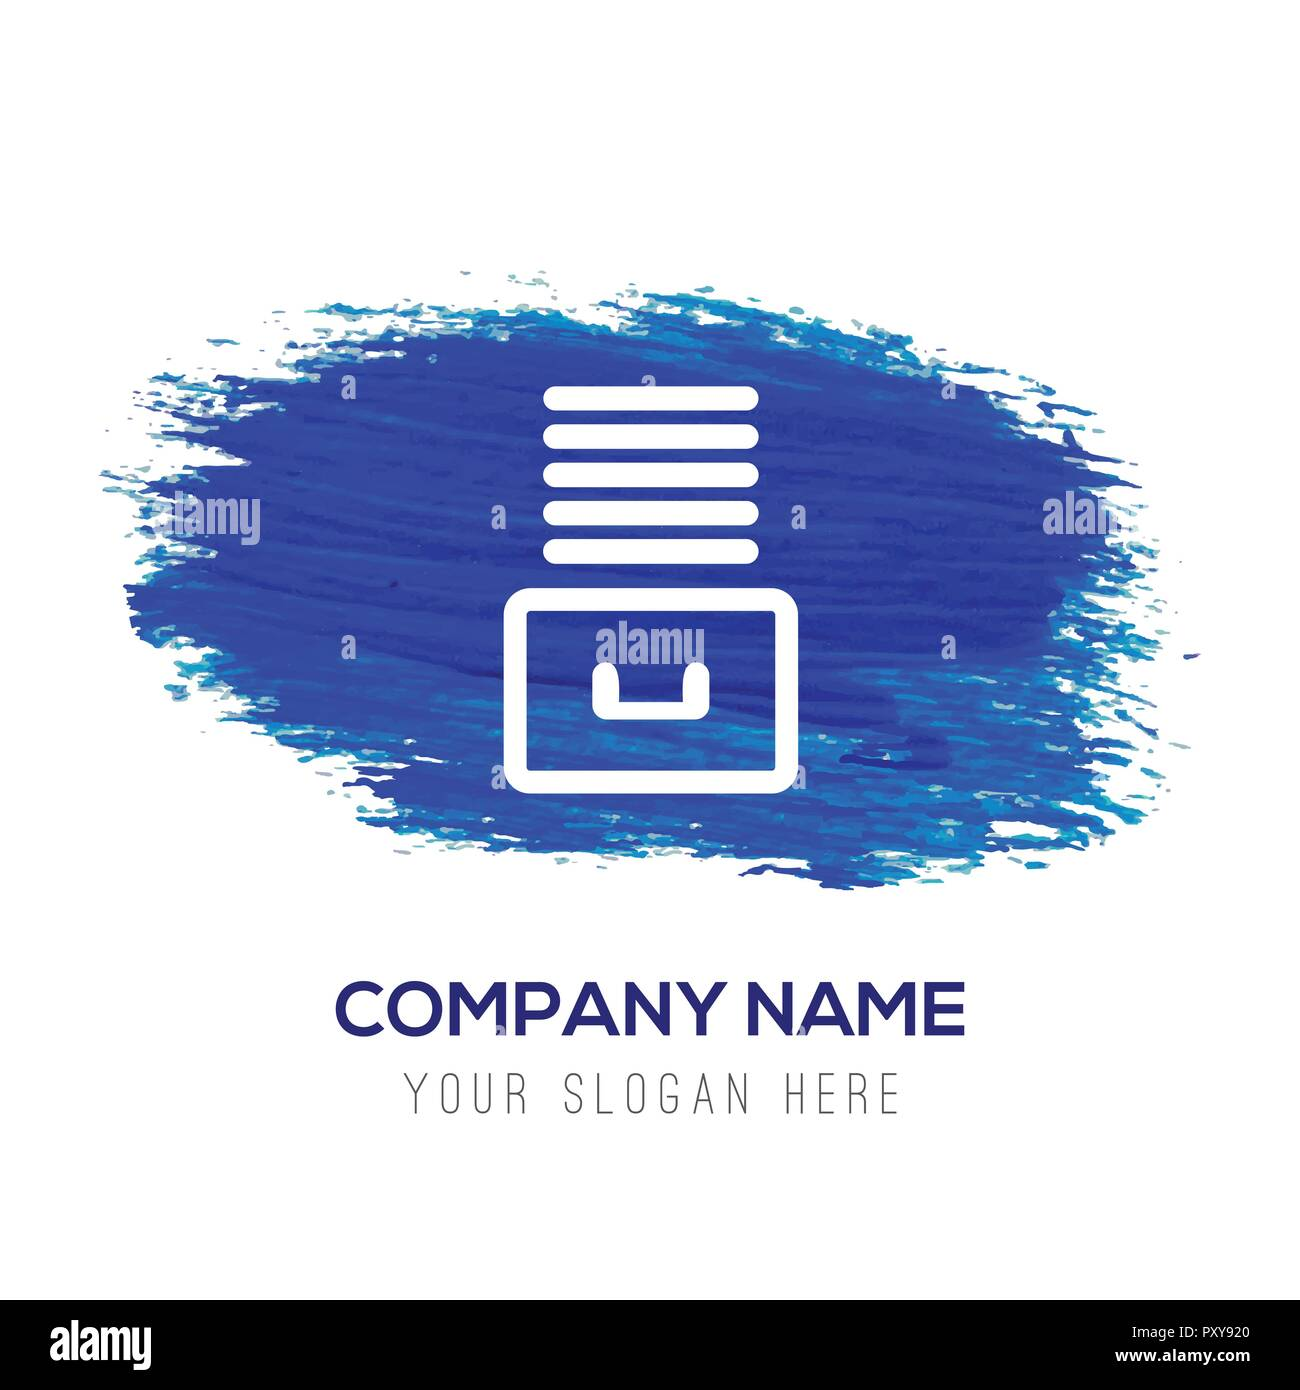 File Stack Icon - Blue watercolor background - Stock Image